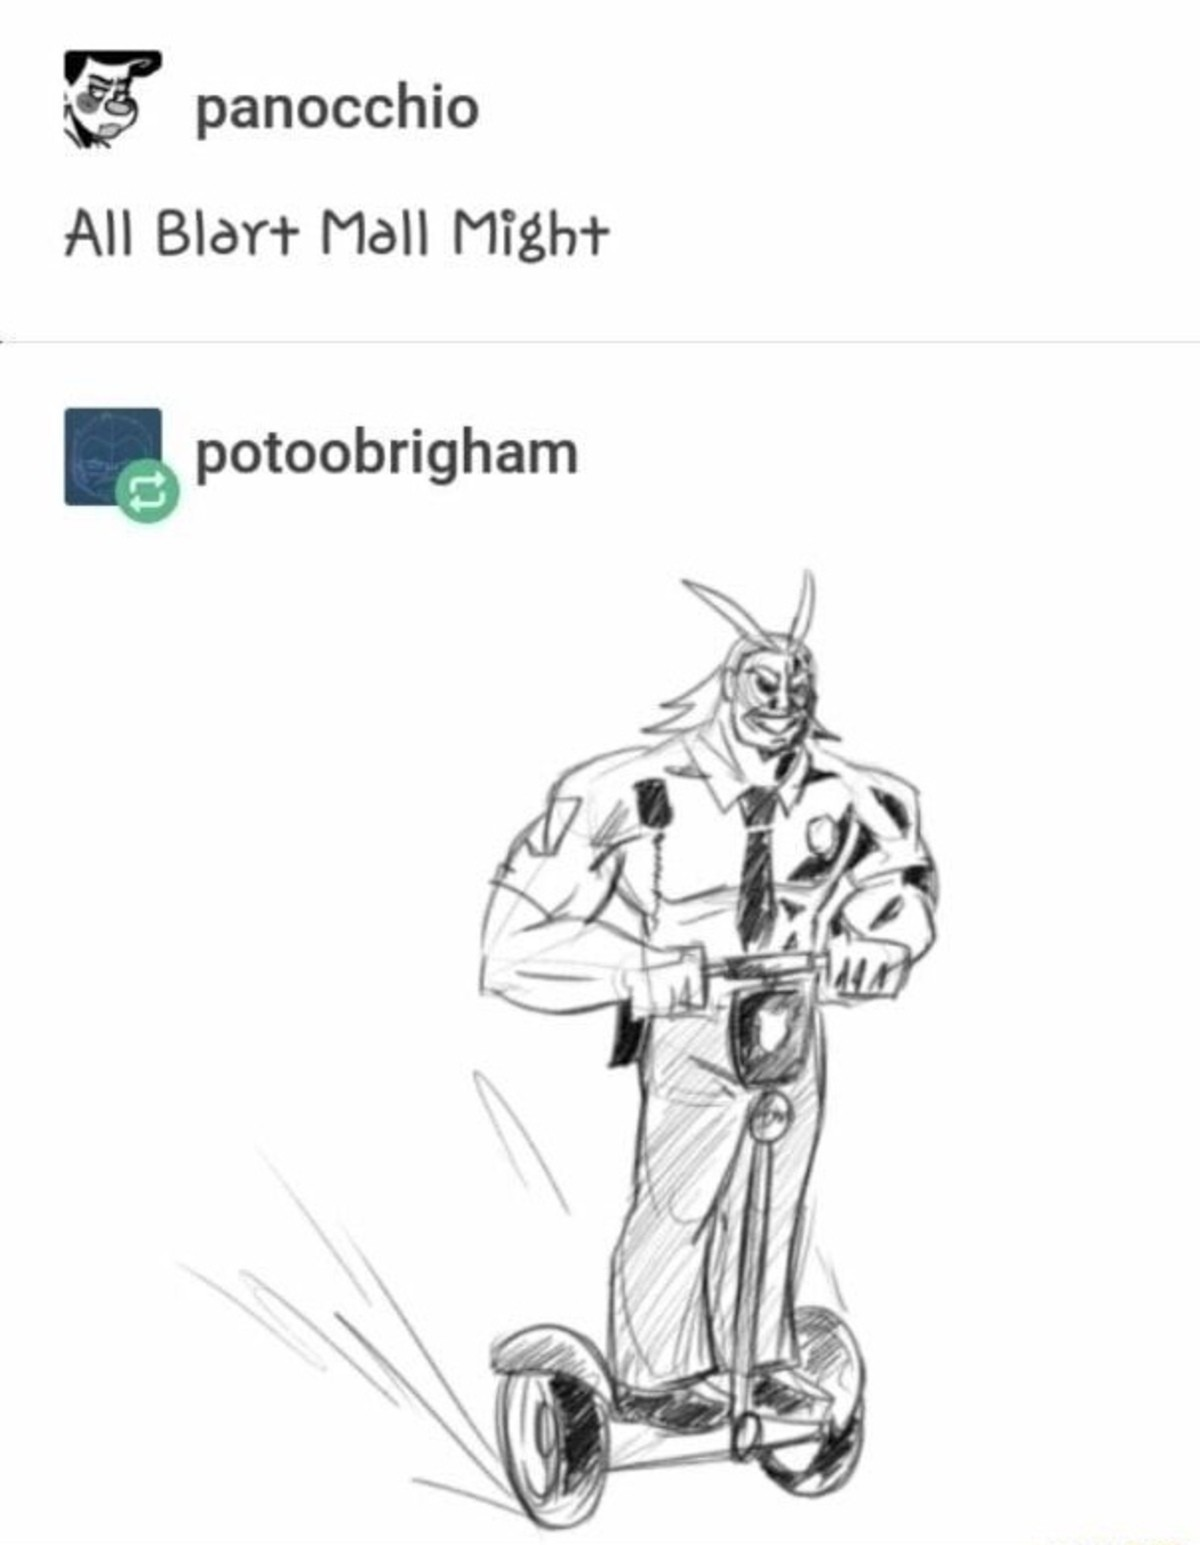 Allmight Cursed. I don't know why. join list: altanimecomps (166 subs)Mention History. pinocchio All Blew Mali. And his fellow rent a cop